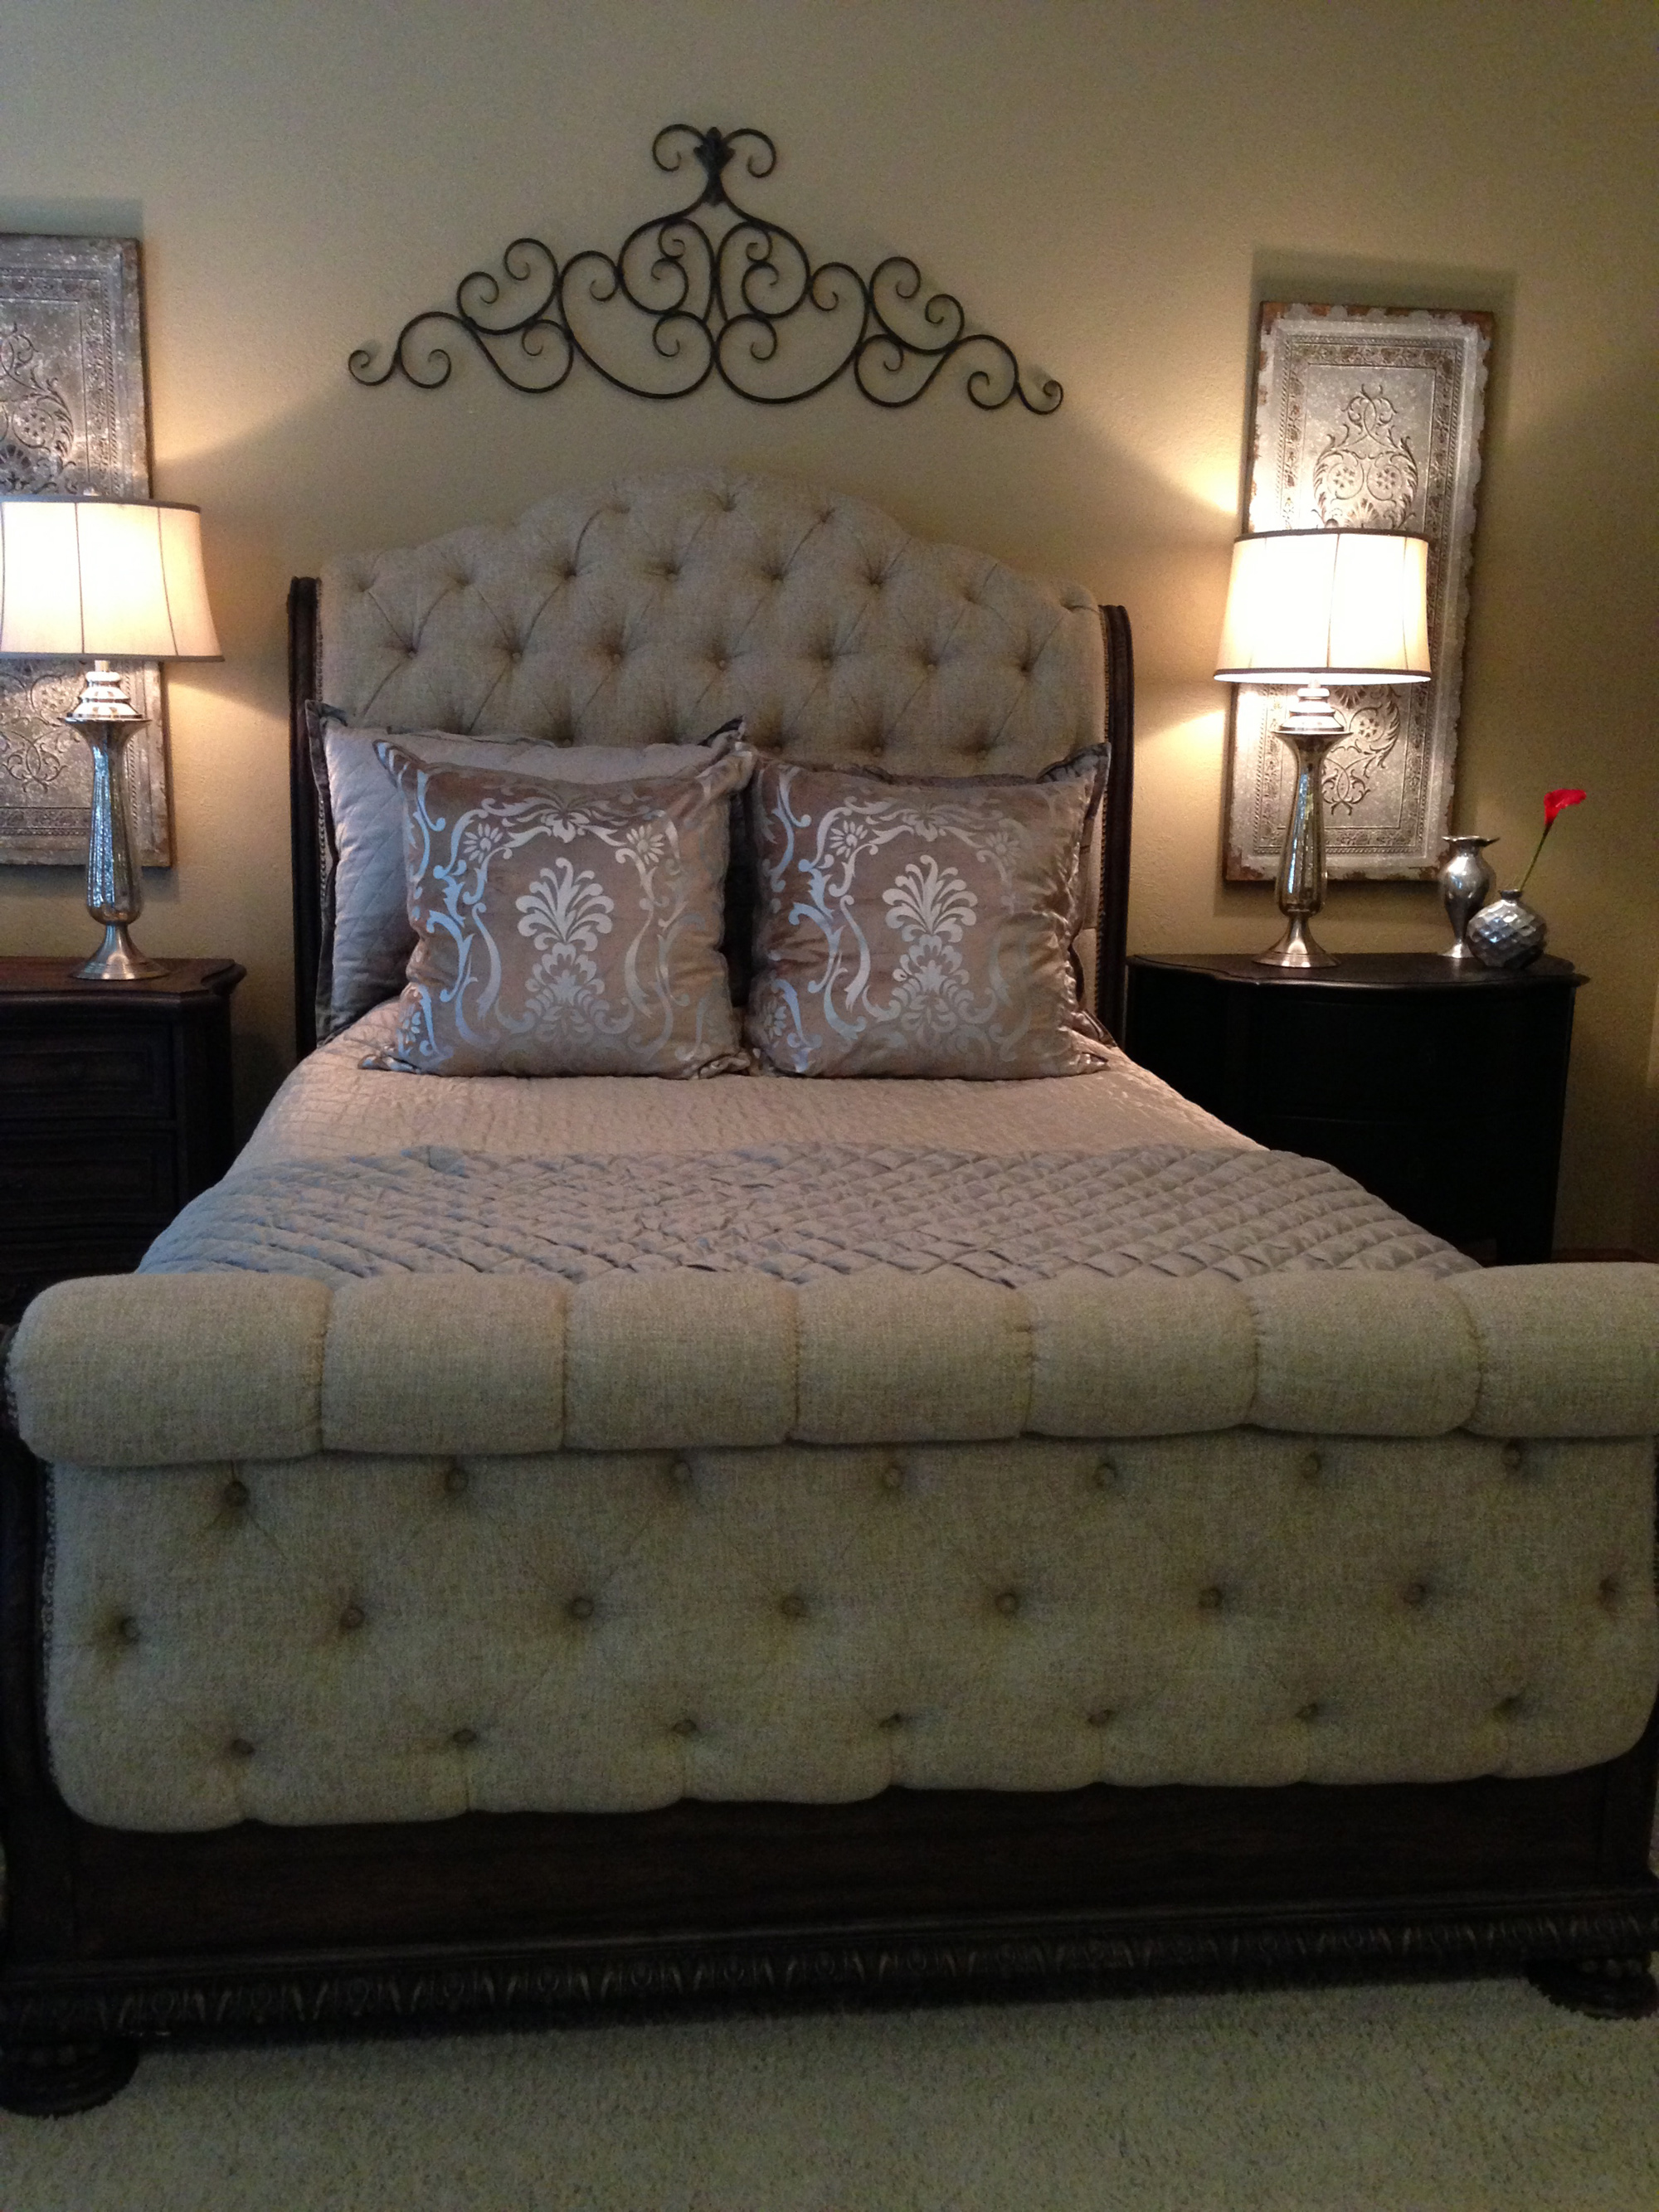 Luxurious Bedding Completed Carsonu0027s Rhapsody Oasis